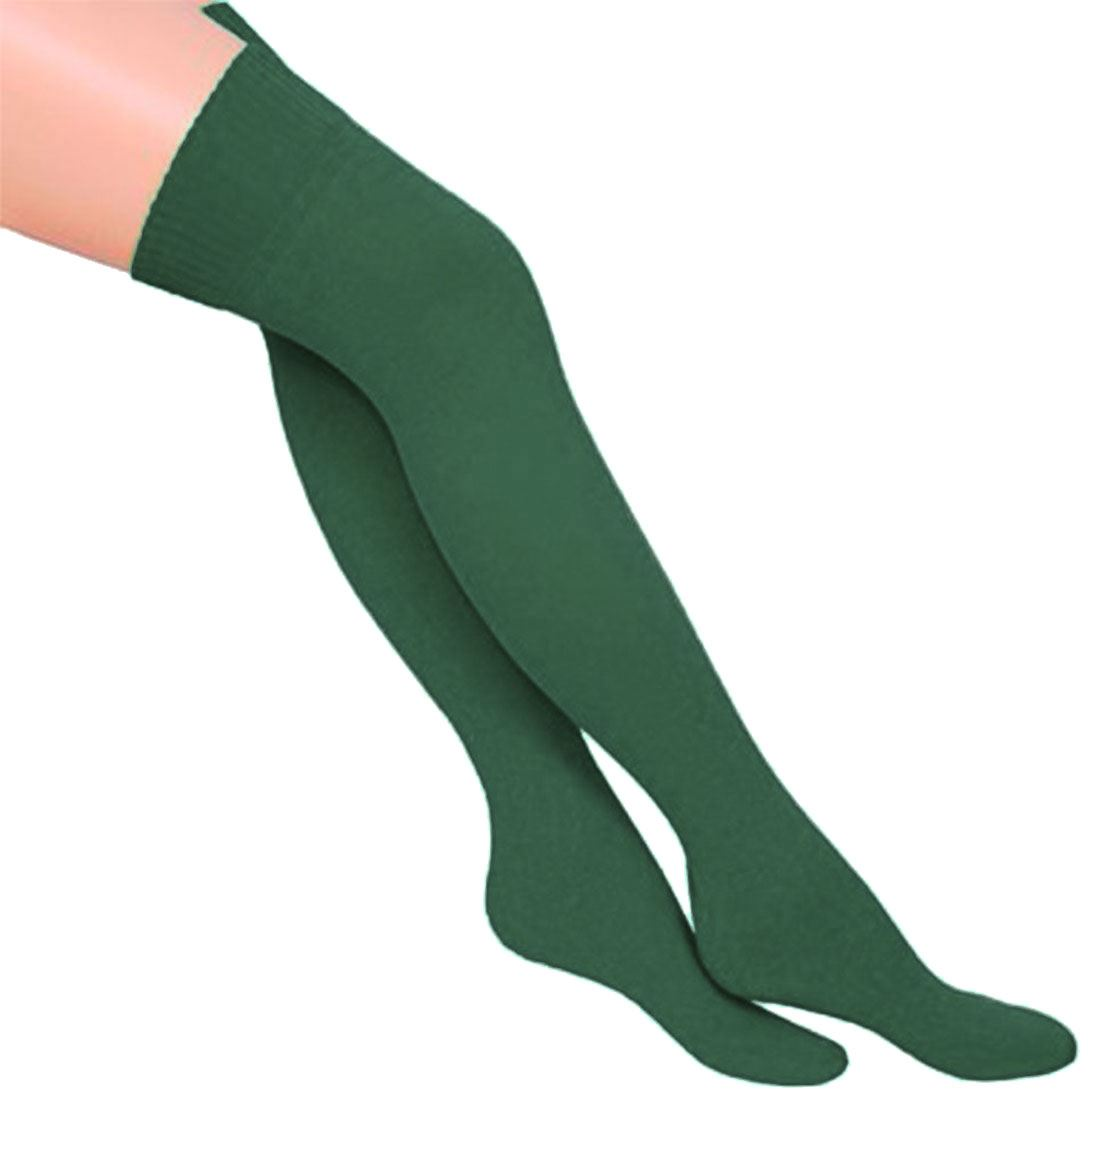 Womens-Over-The-Knee-Thigh-High-Fancy-Socks-Ladies-Plain-Casual-Wear-OTK-Socks thumbnail 6